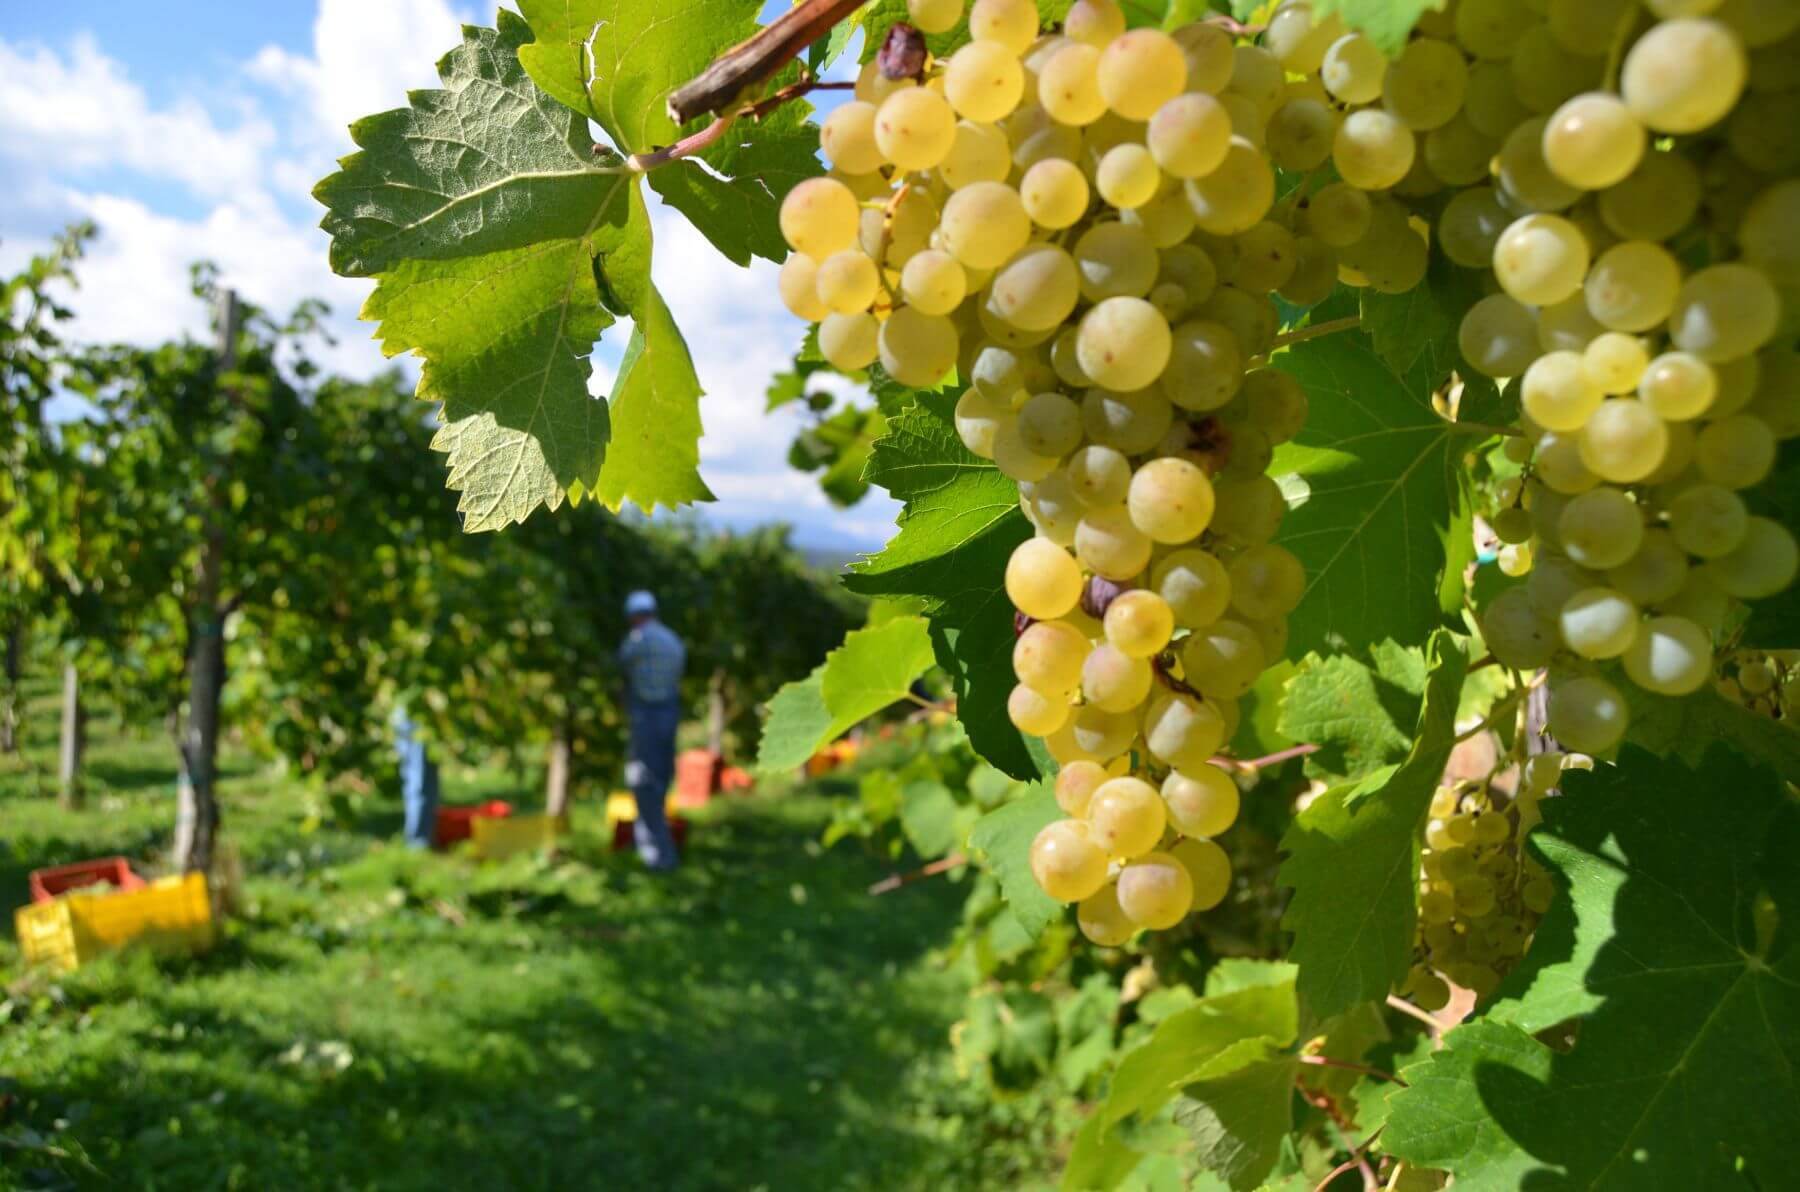 Wine grapes from the Prosecco region